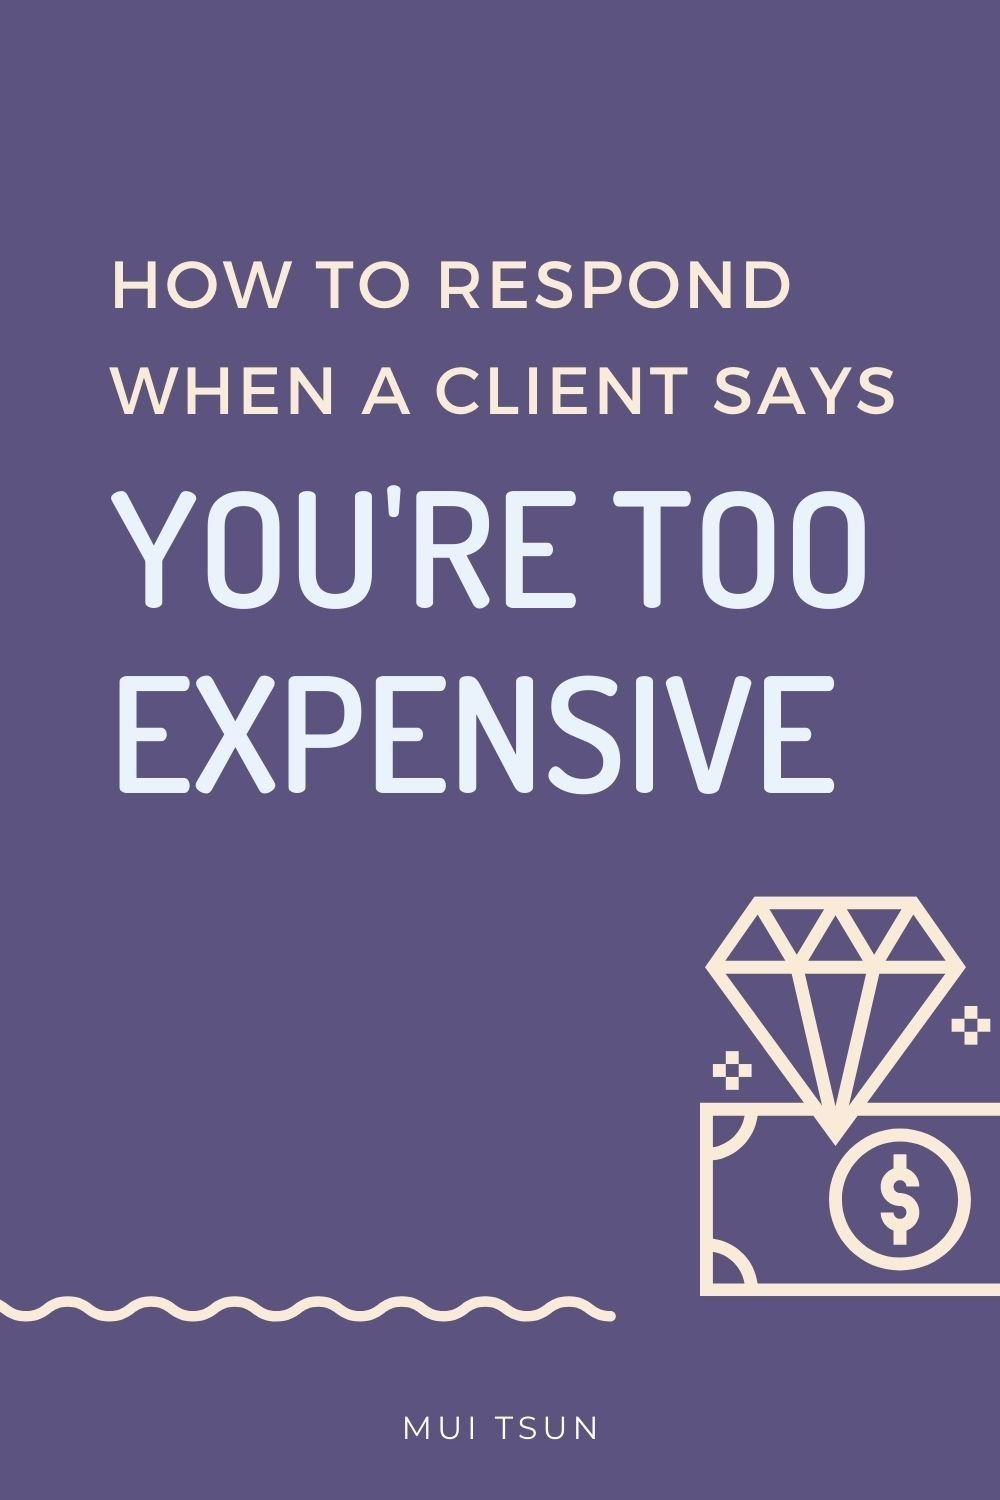 How to Respond When a Client Says You're too expensive!